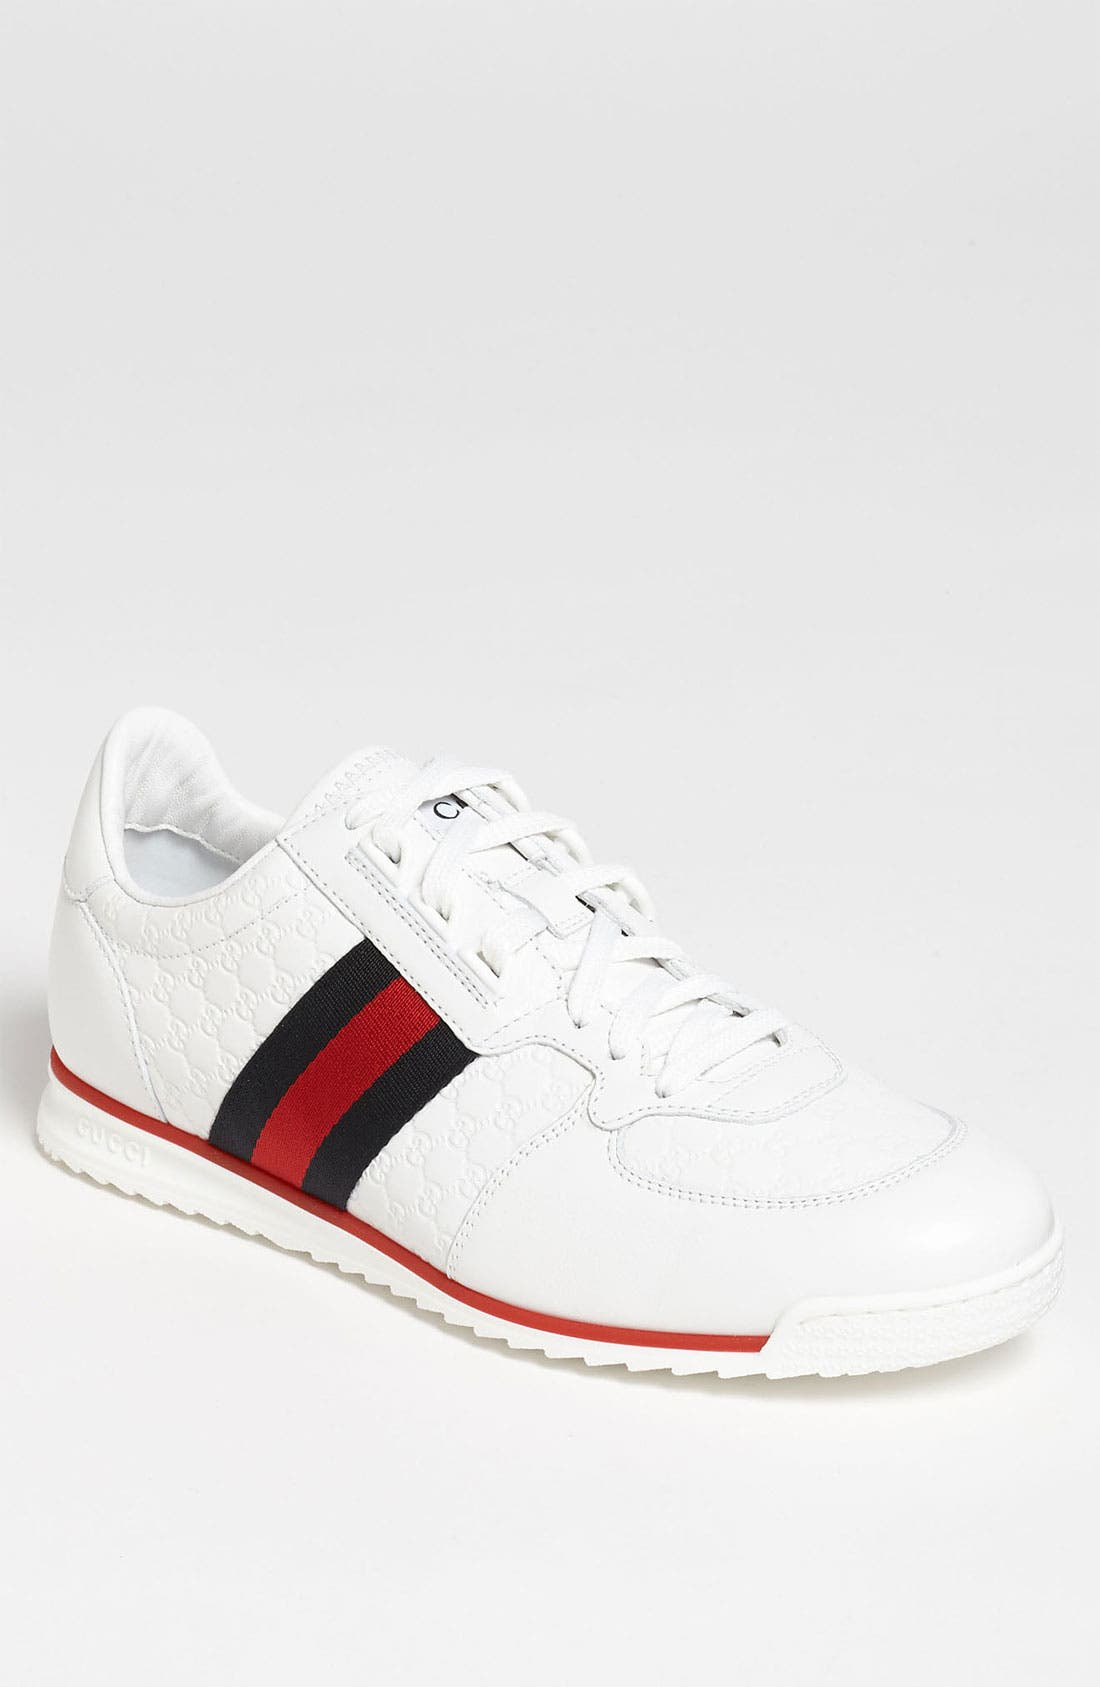 gucci 1984 sneakers. main image - gucci sl 73 sneaker (men) 1984 sneakers t